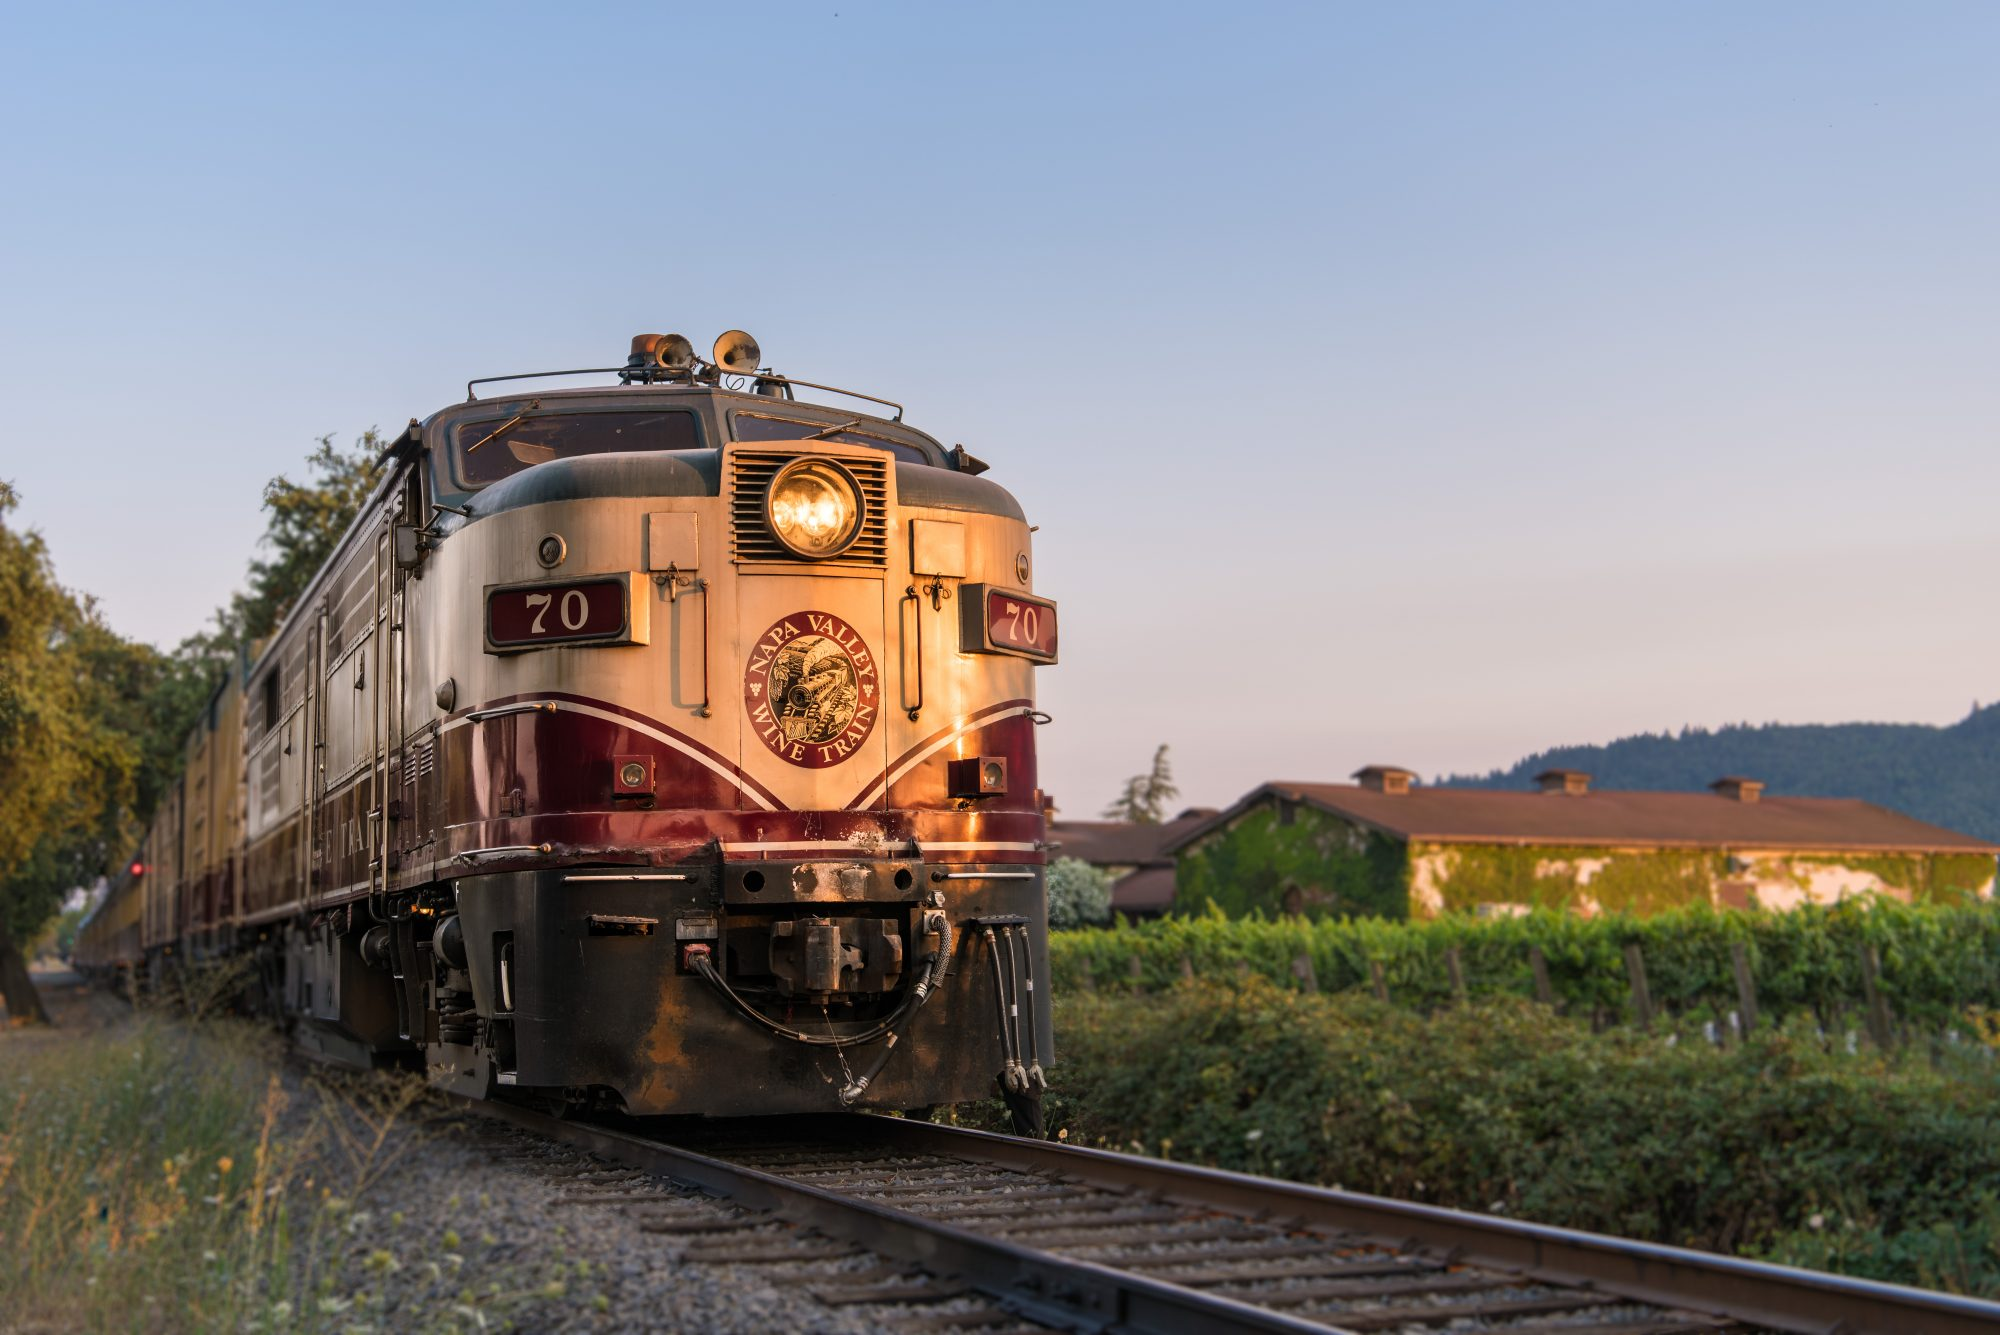 the Napa Valley Wine Train at sunset